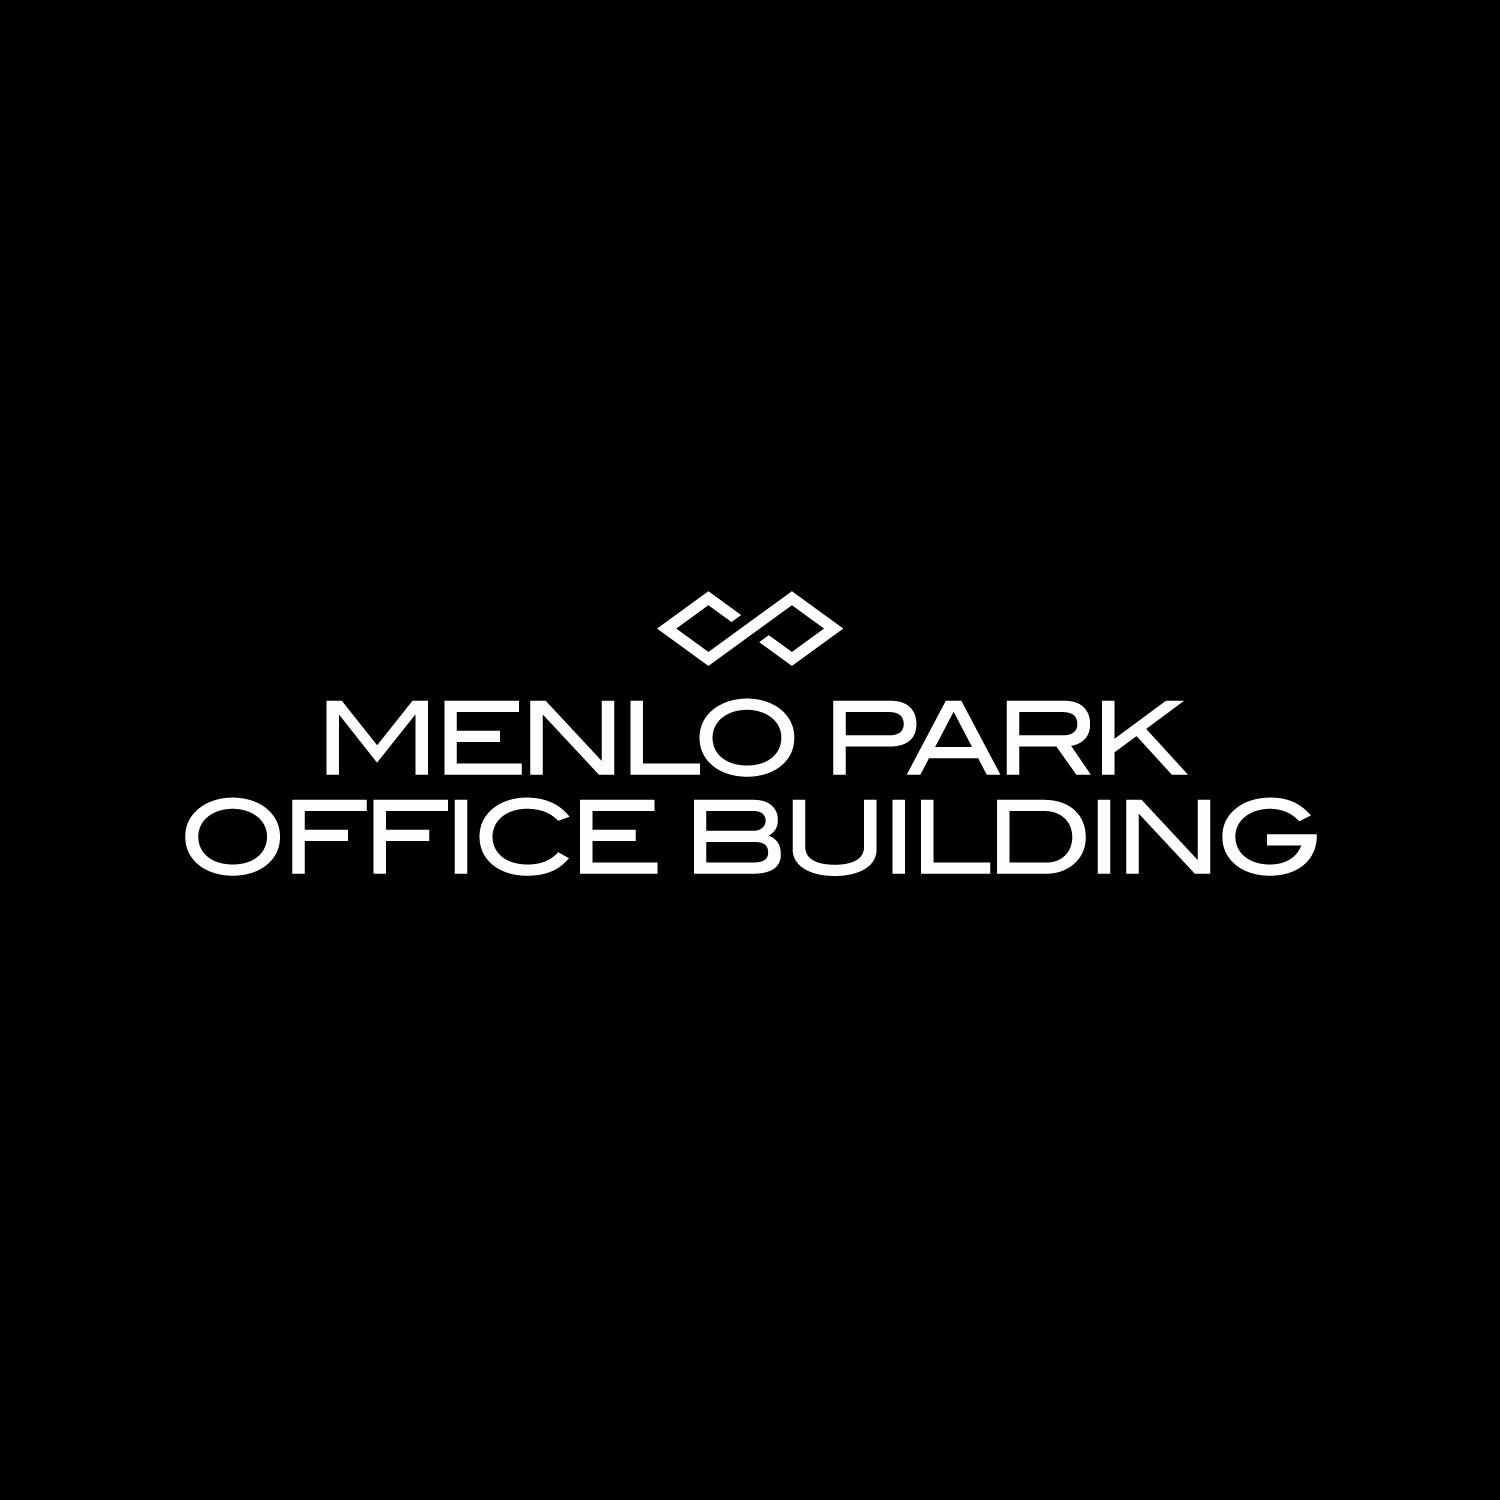 Menlo Park Office Building